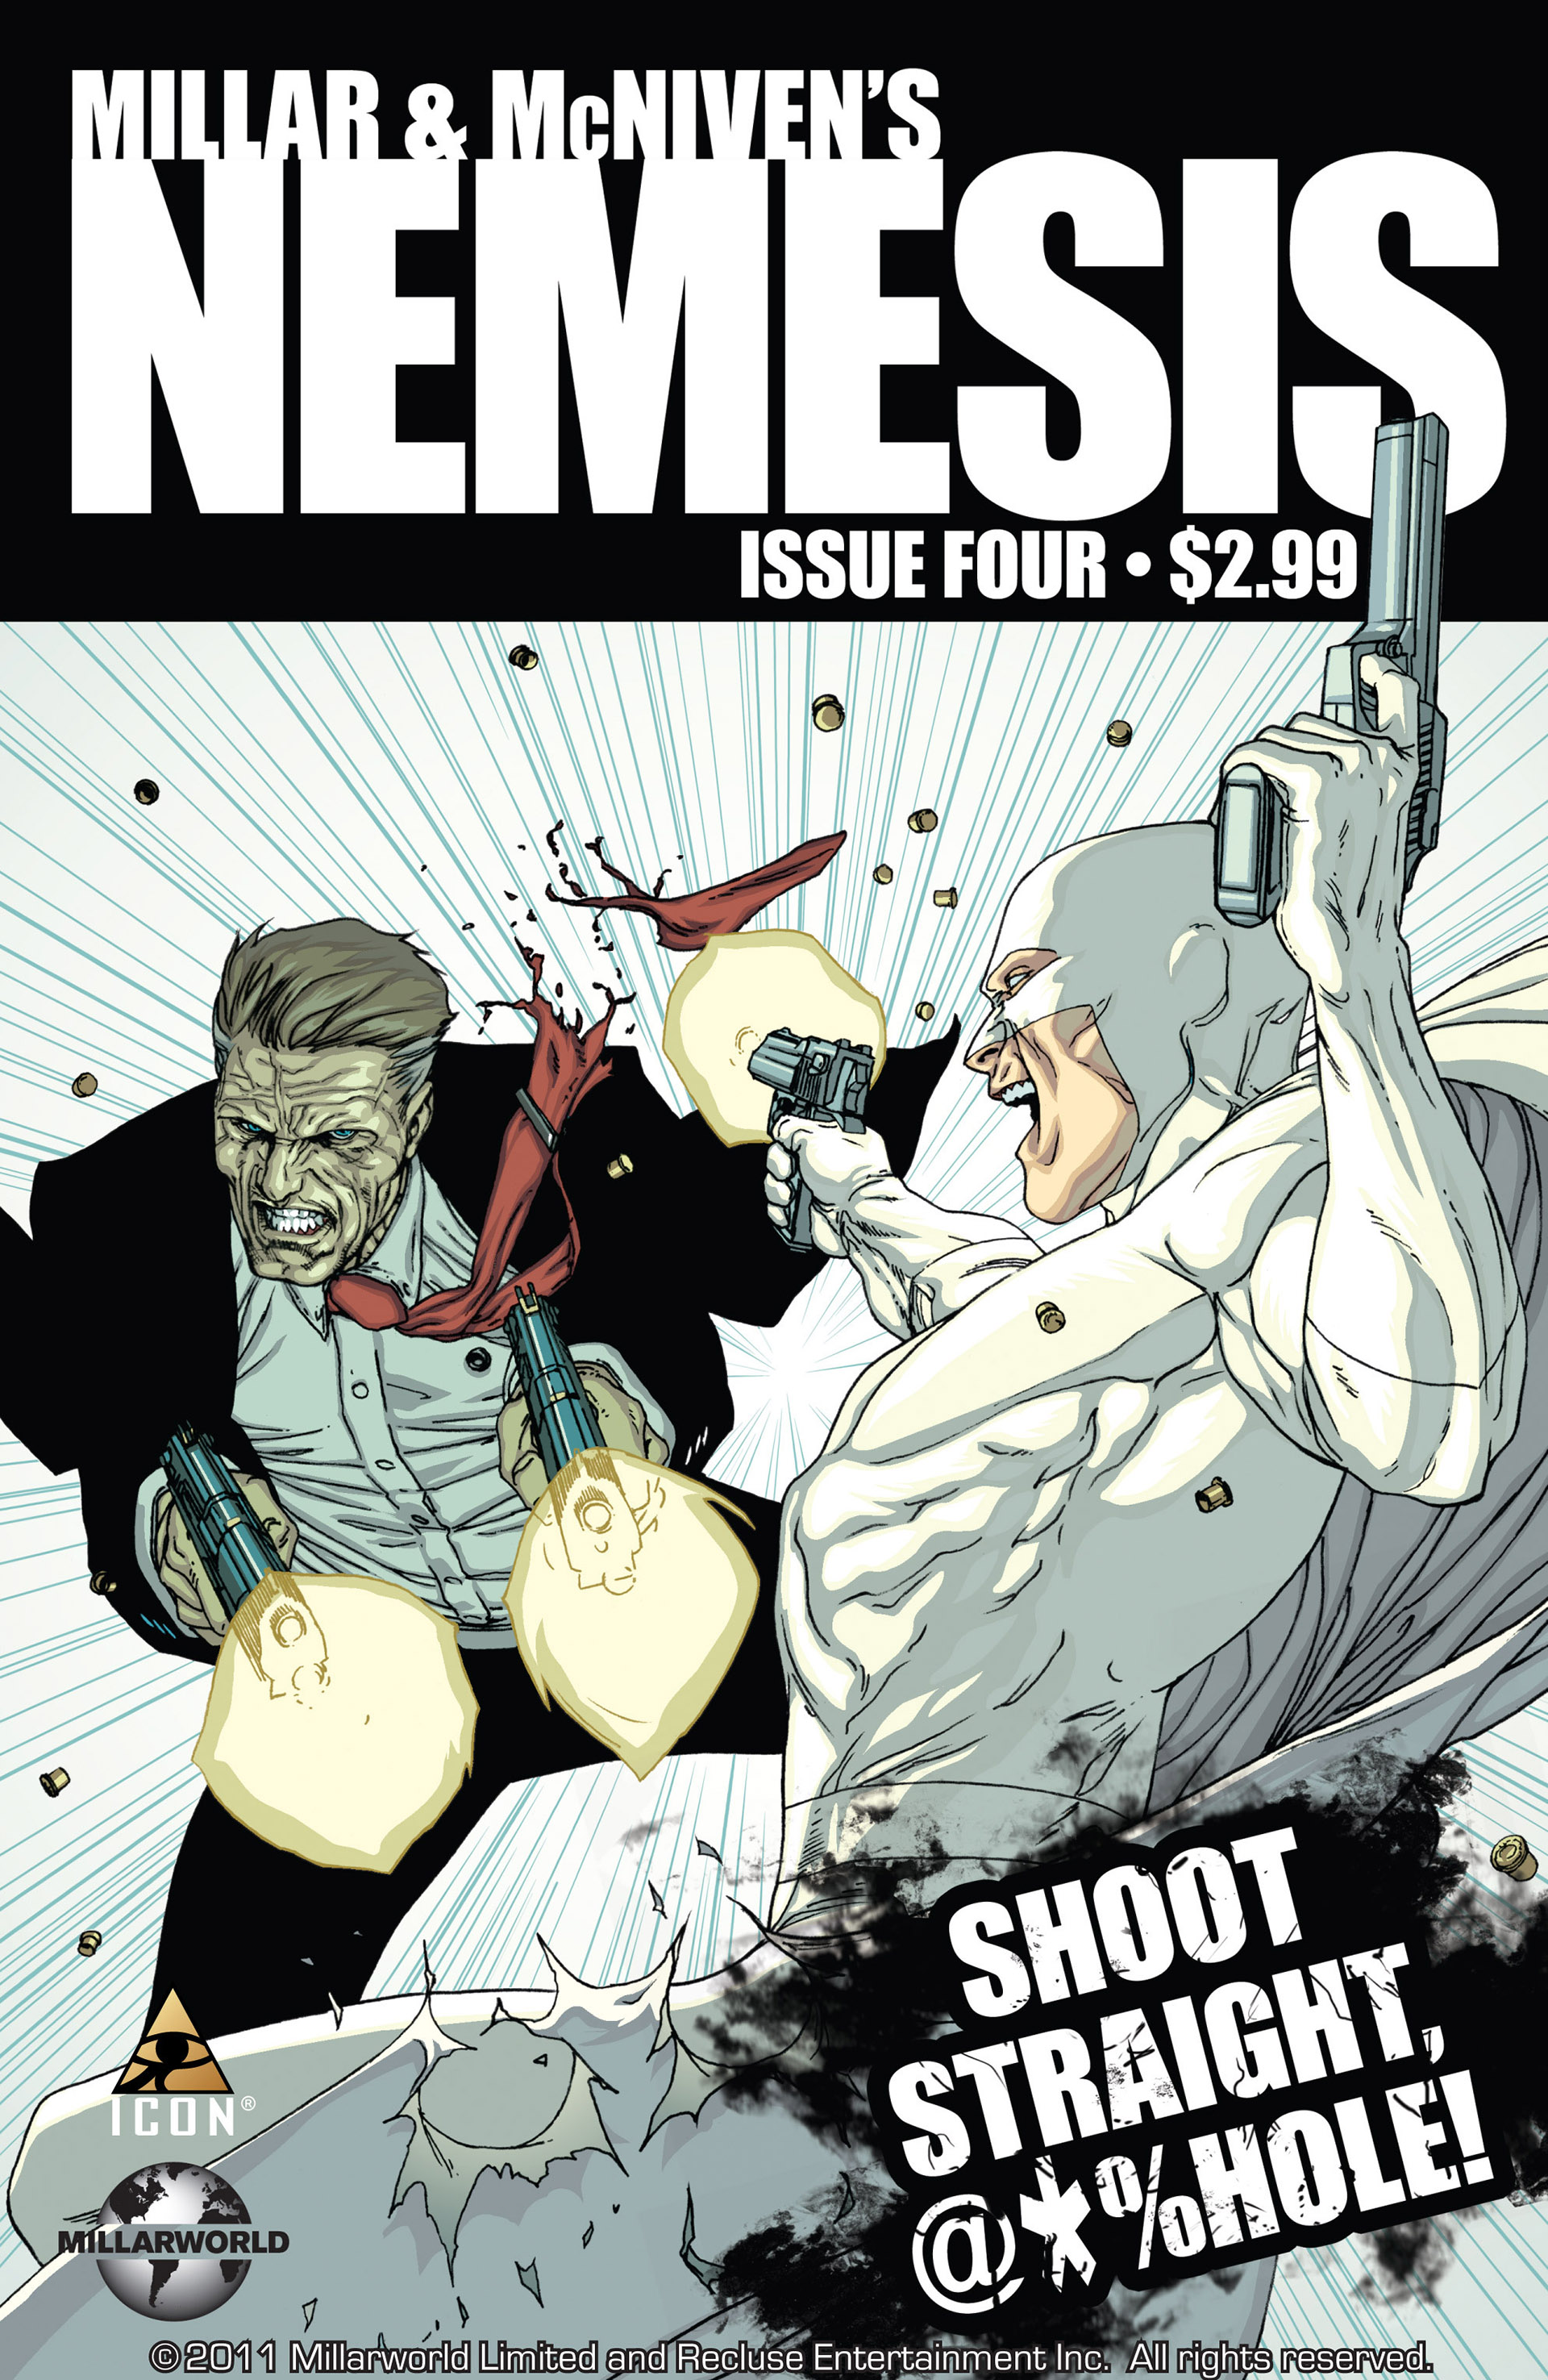 Read online Millar & McNiven's Nemesis comic -  Issue #4 - 1